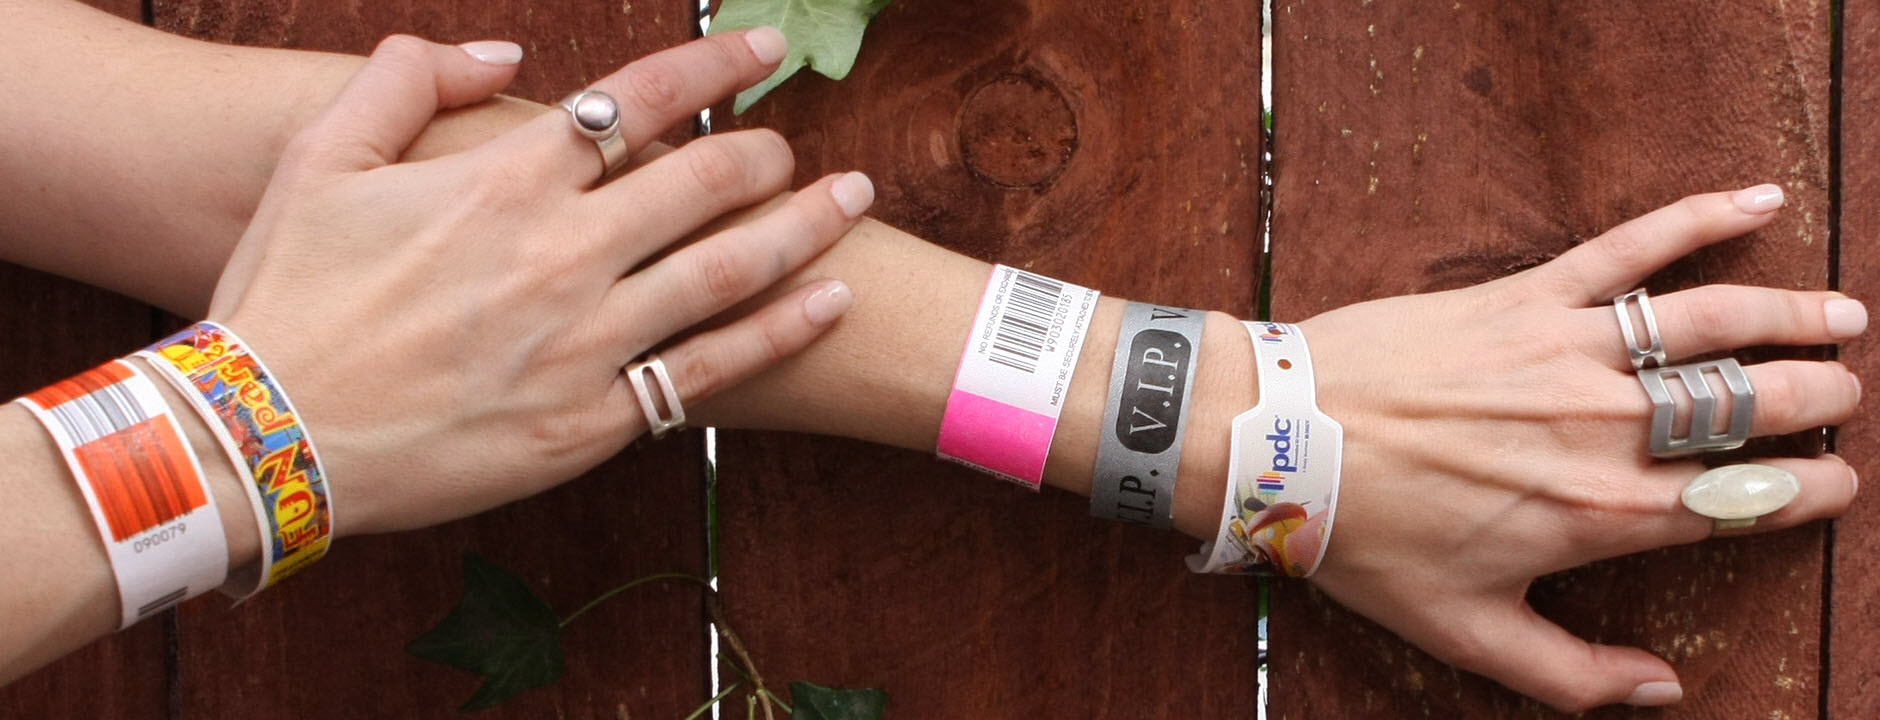 7 Tips for Designing Your New Custom Wristbands